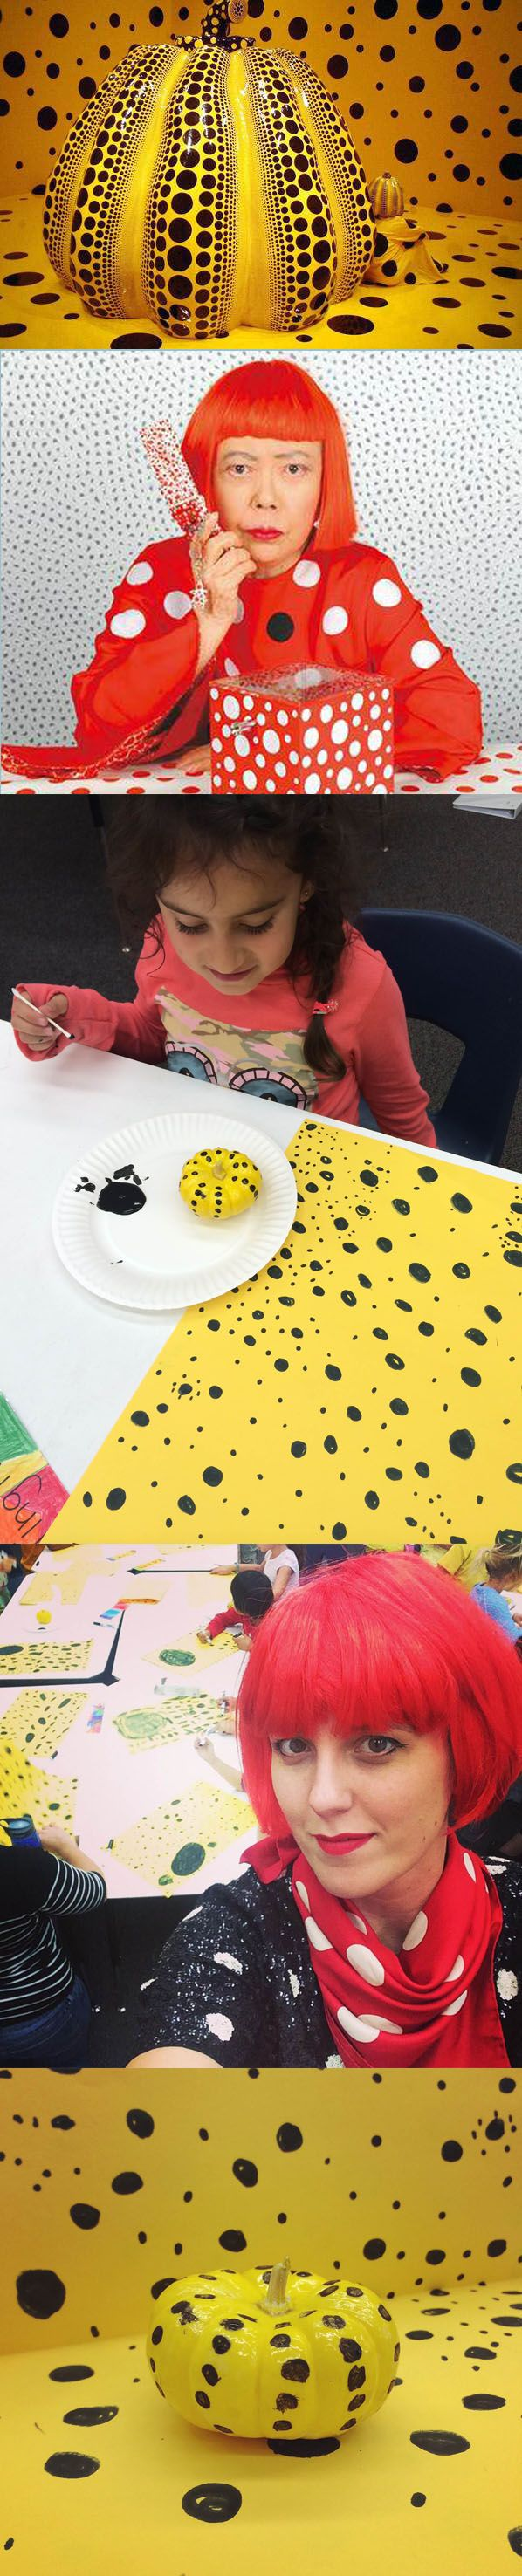 """Yayoi Kusama - a Halloween inspired class - the kids learned about the artist's obsession with dots and then we replicated her yellow pumpkin room installation by creating our own """"rooms"""" using 11x17 paper, black marker, mini-pumpkins, yellow & black jazz paint.  I showed up in costume as the artist."""